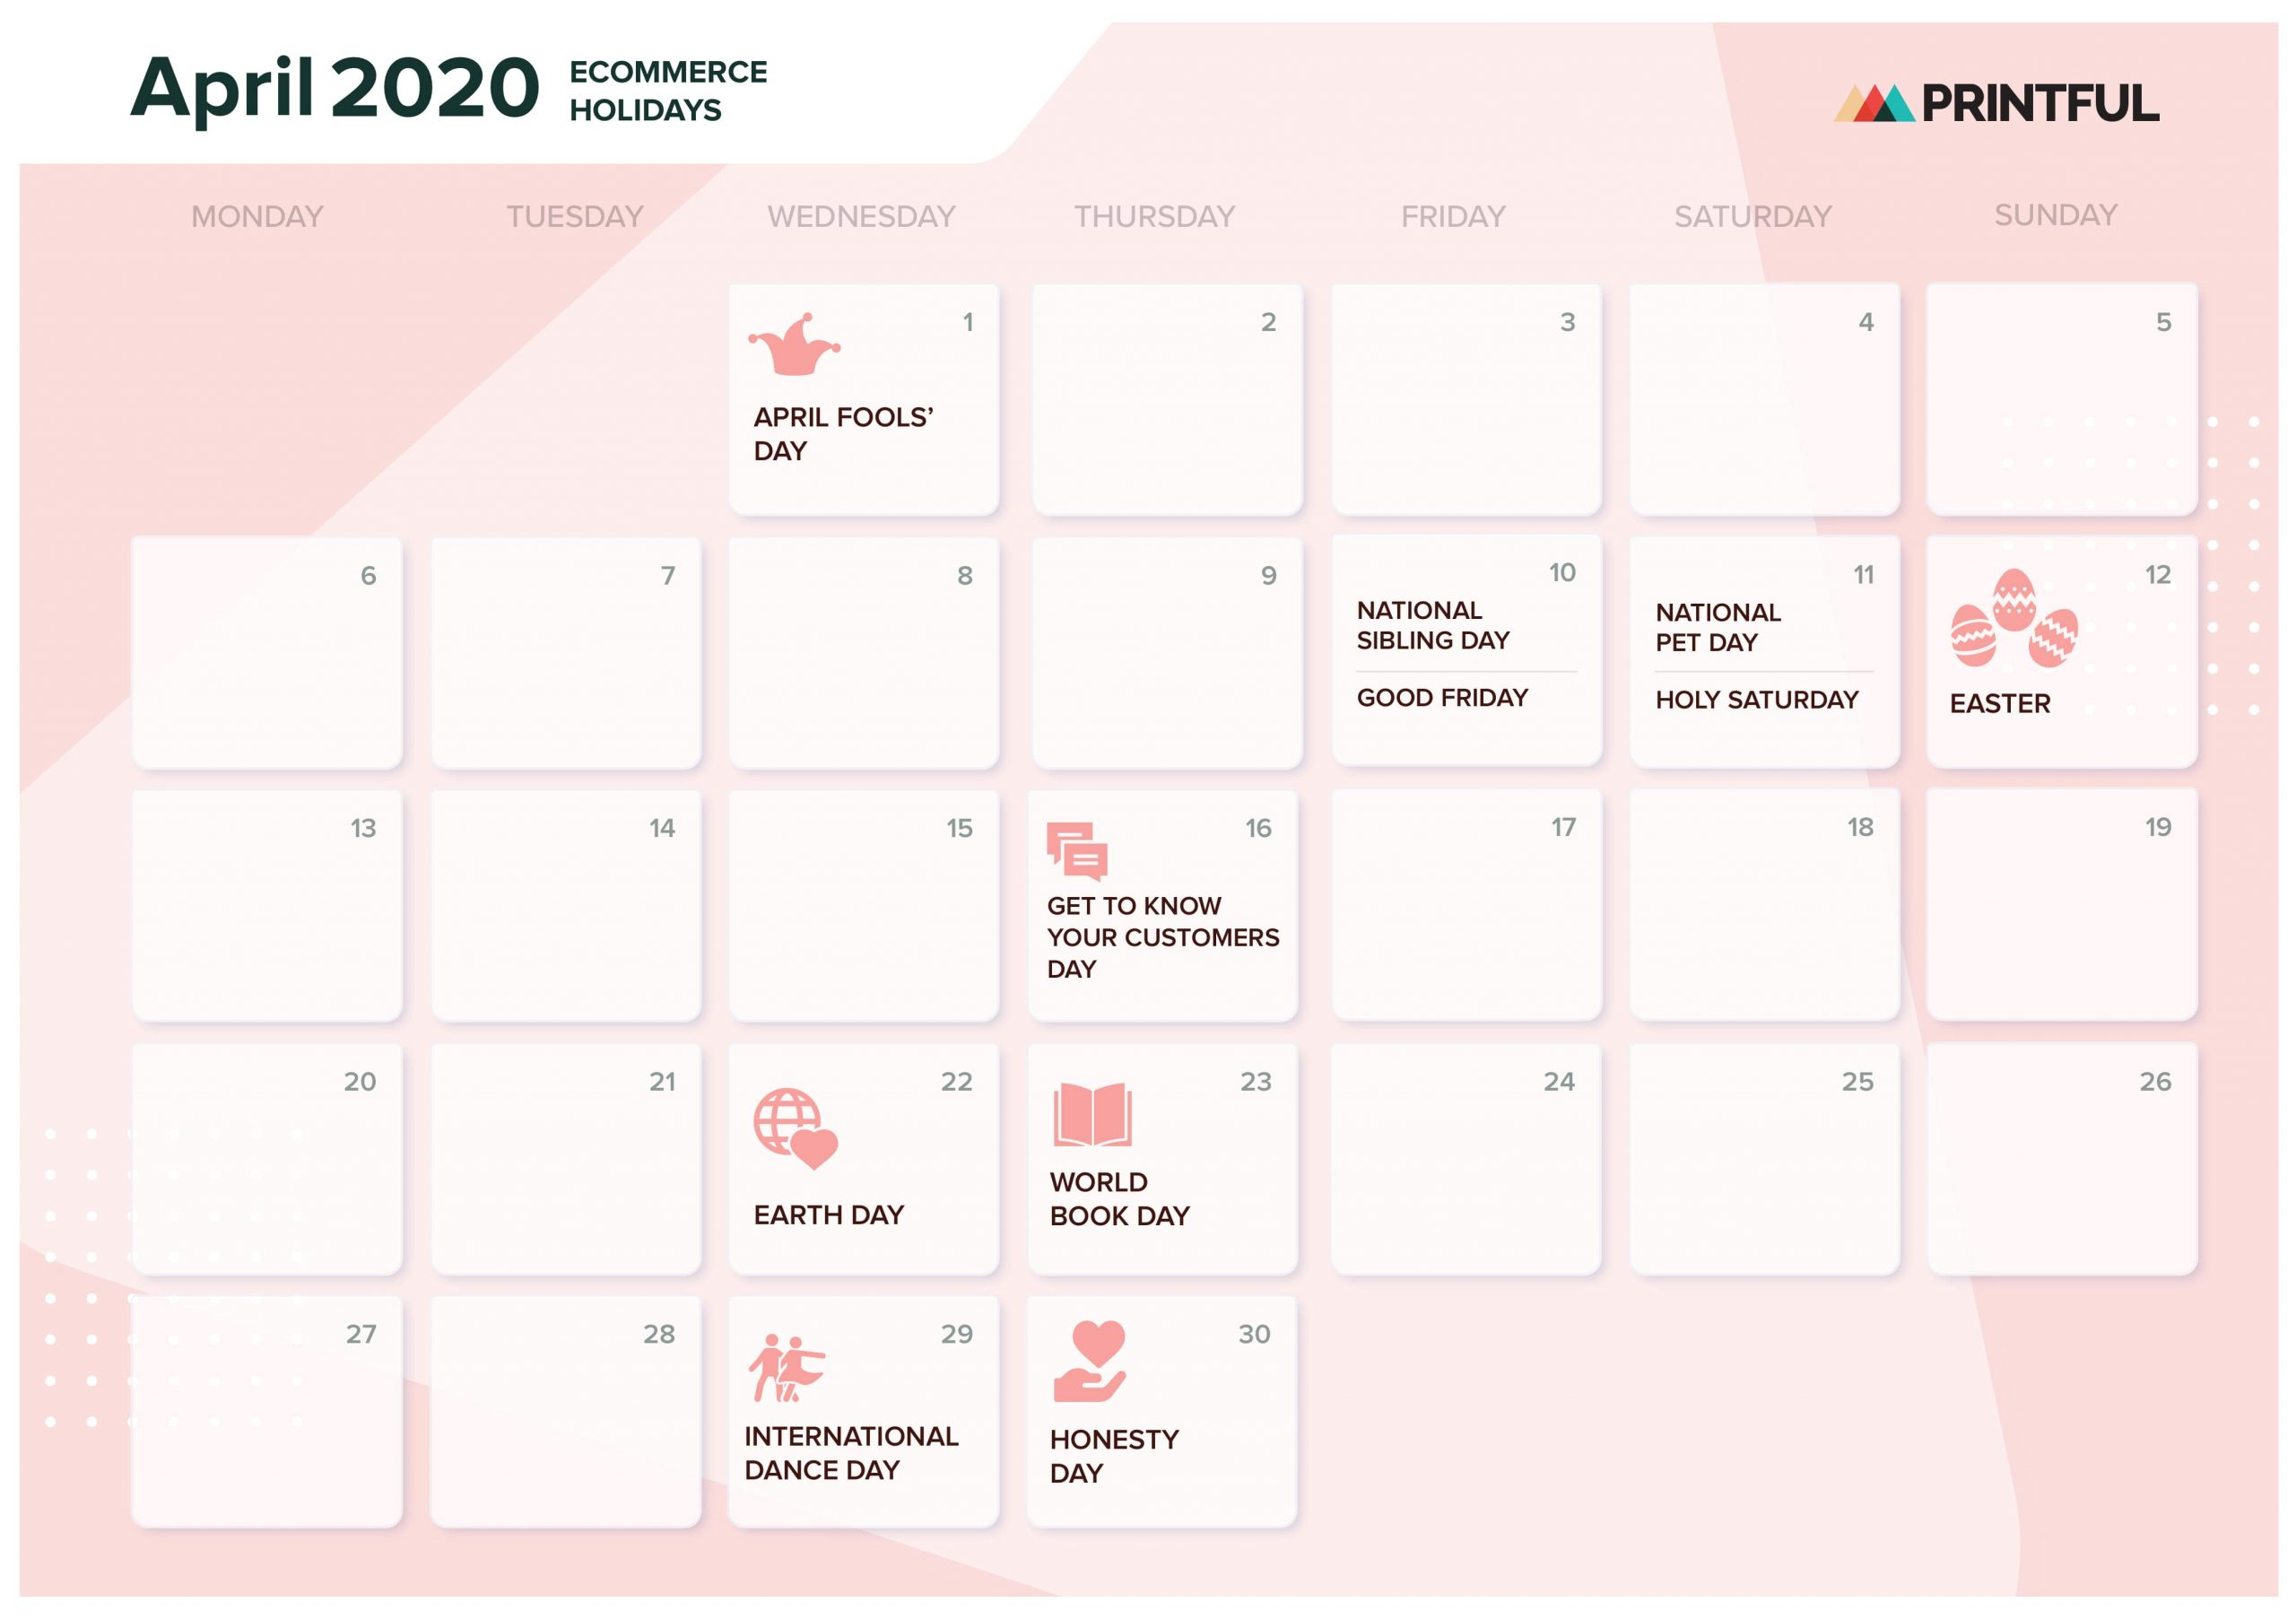 The Ultimate 2020 Ecommerce Holiday Marketing Calendar with regard to National Food Day With Events Calender 2020 Free To Print Up